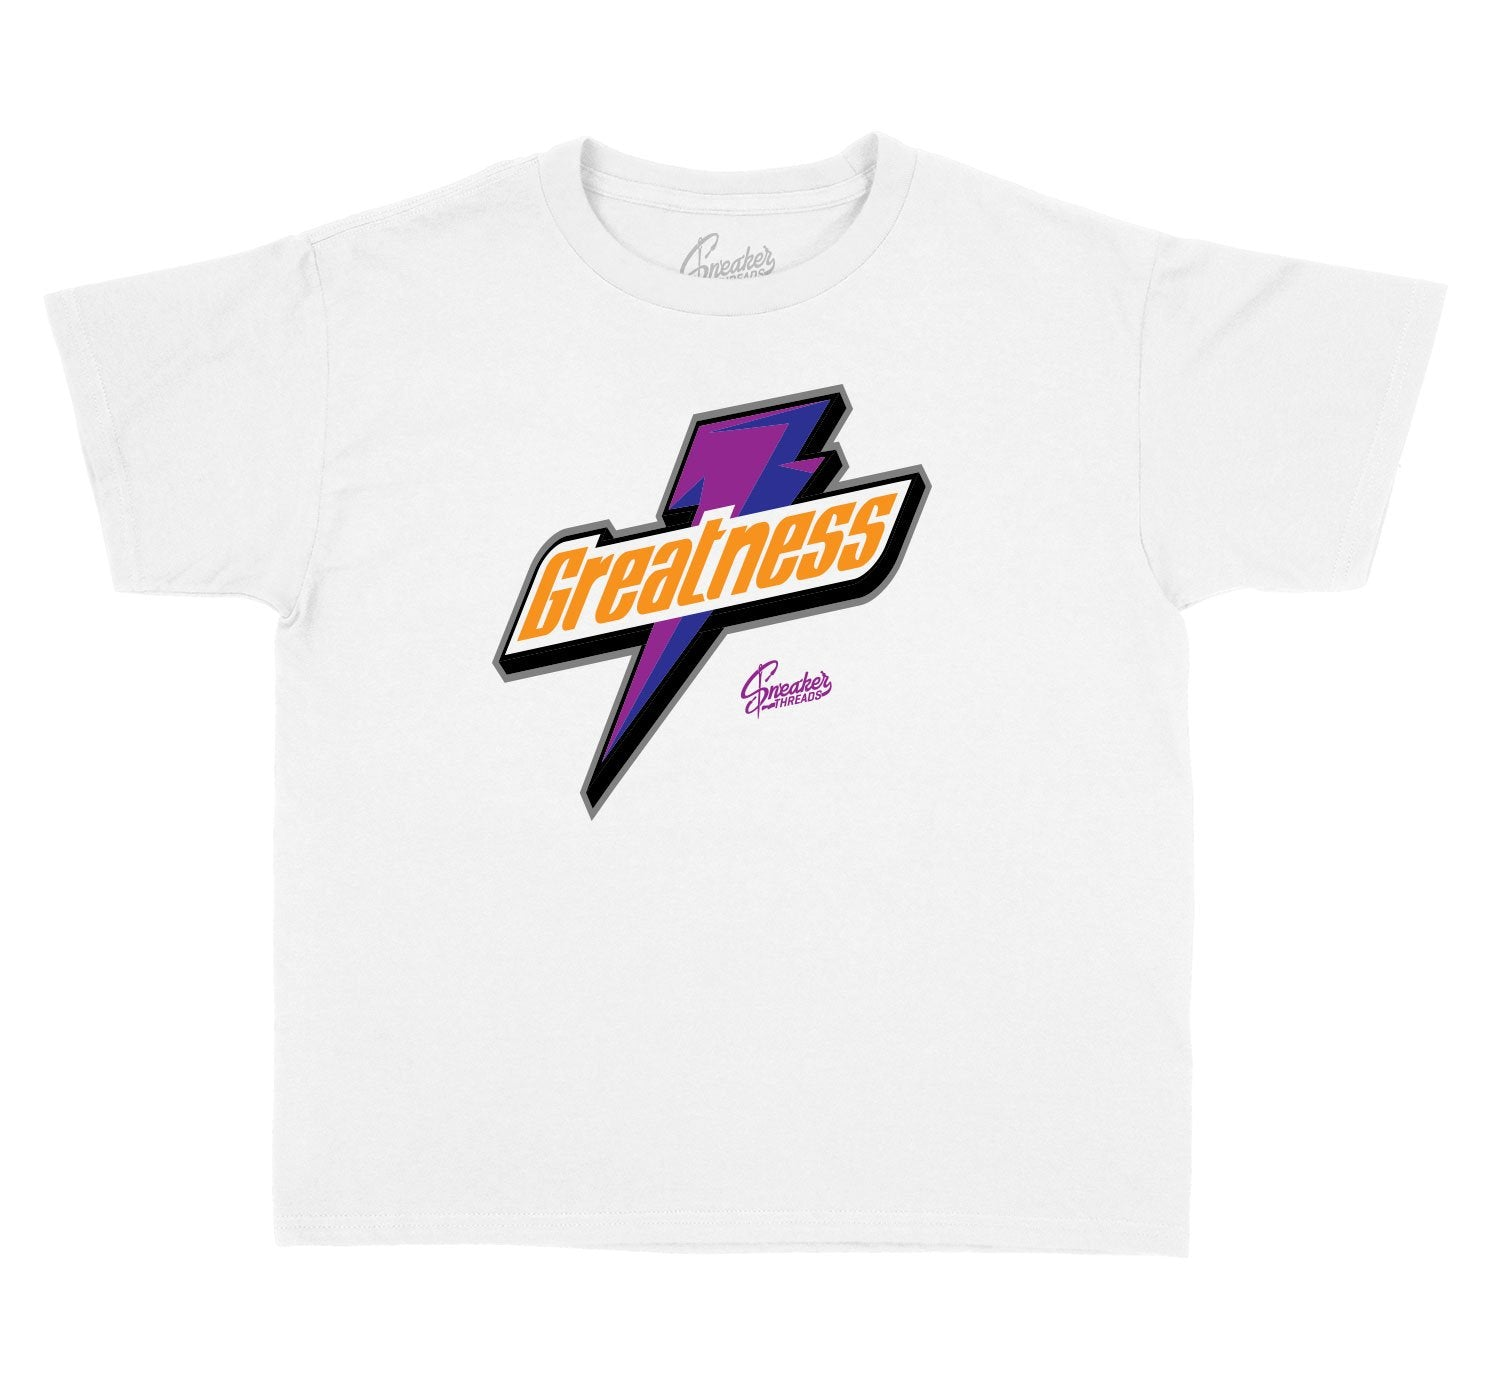 Jordan Greatness shirt for kids to match Rush Violet 4's